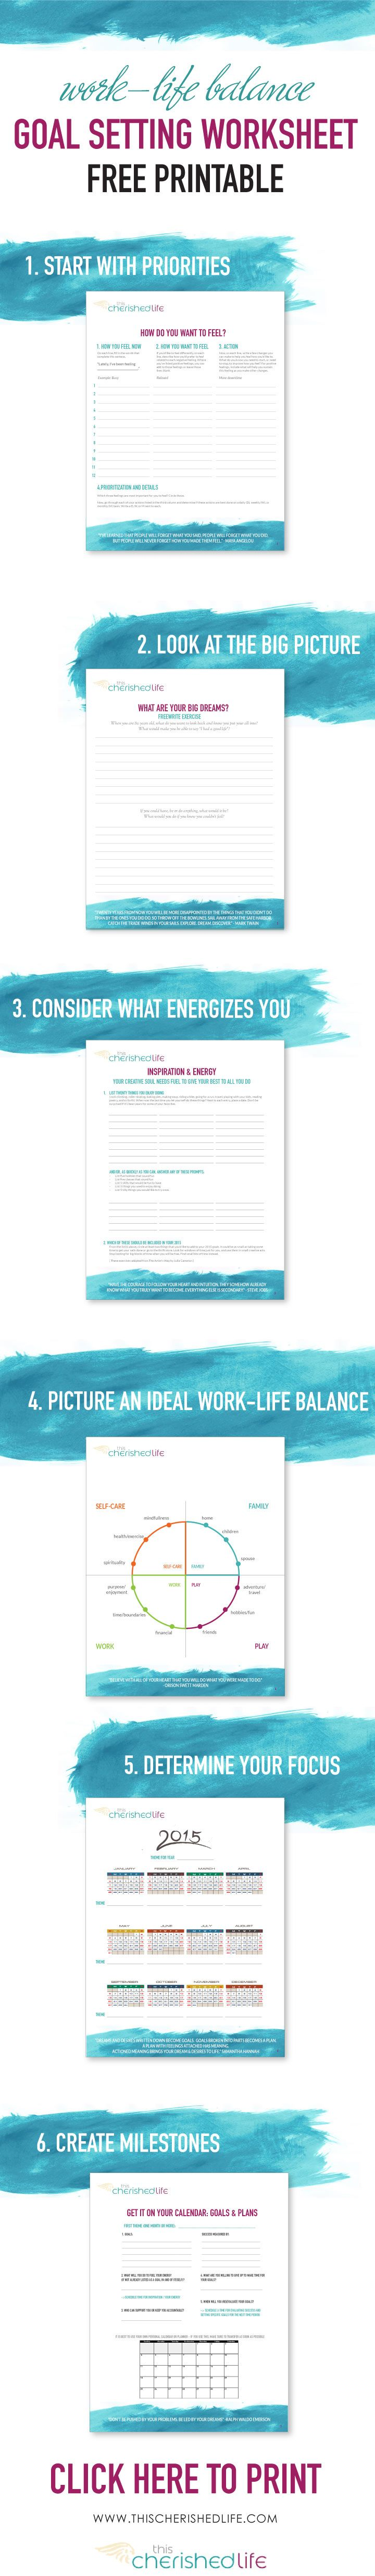 best ideas about goal setting worksheet goals find this pin and more on job related stuff